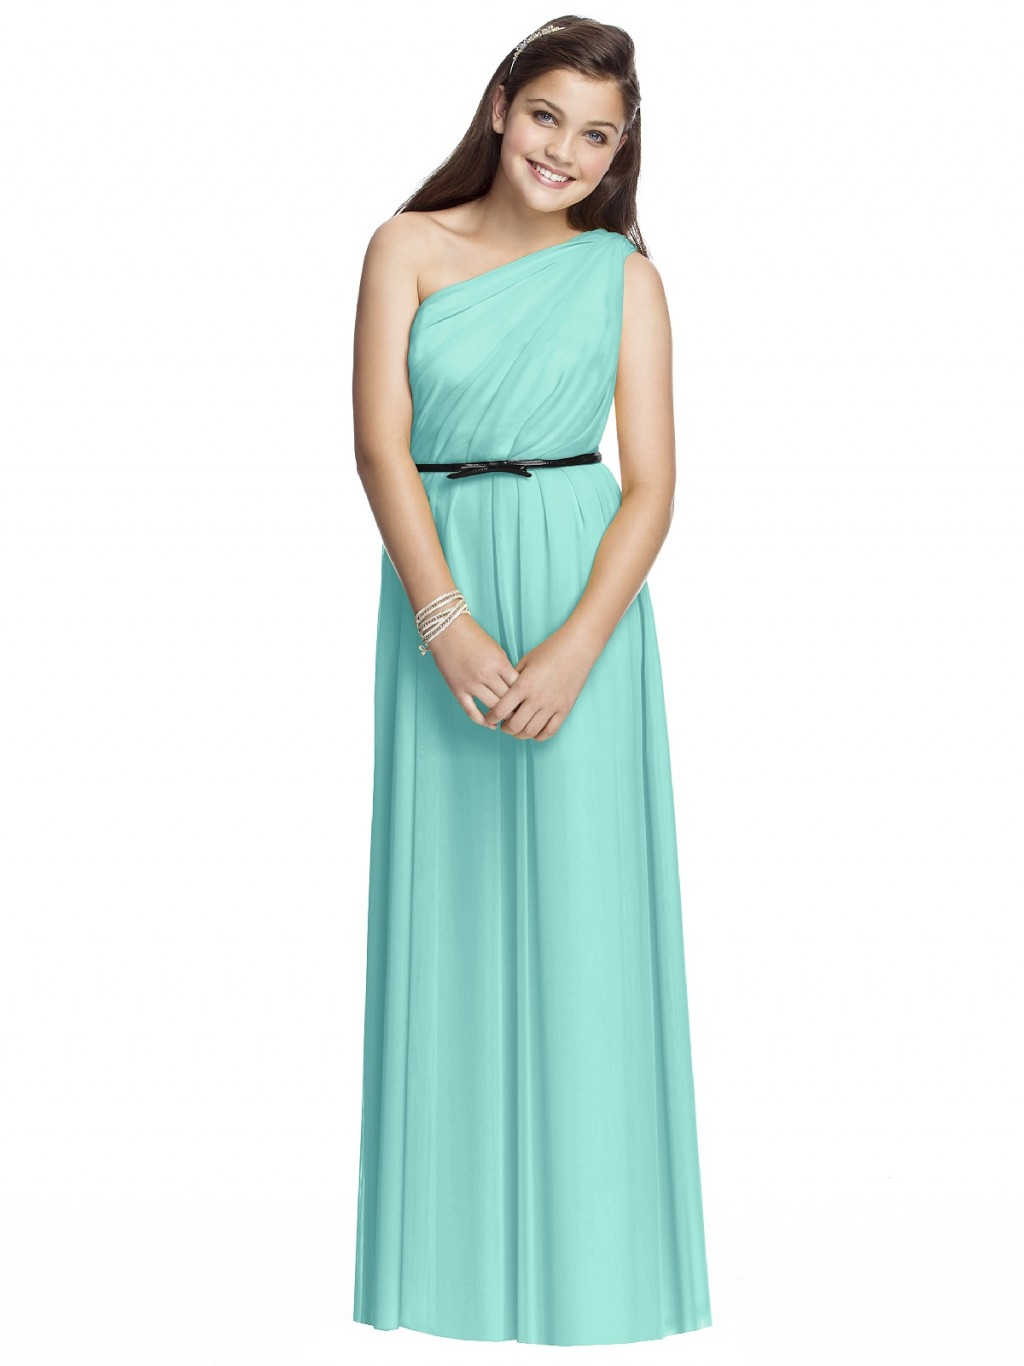 dresses+for+teens | ... - Junior Dresses Party Evening-Discount